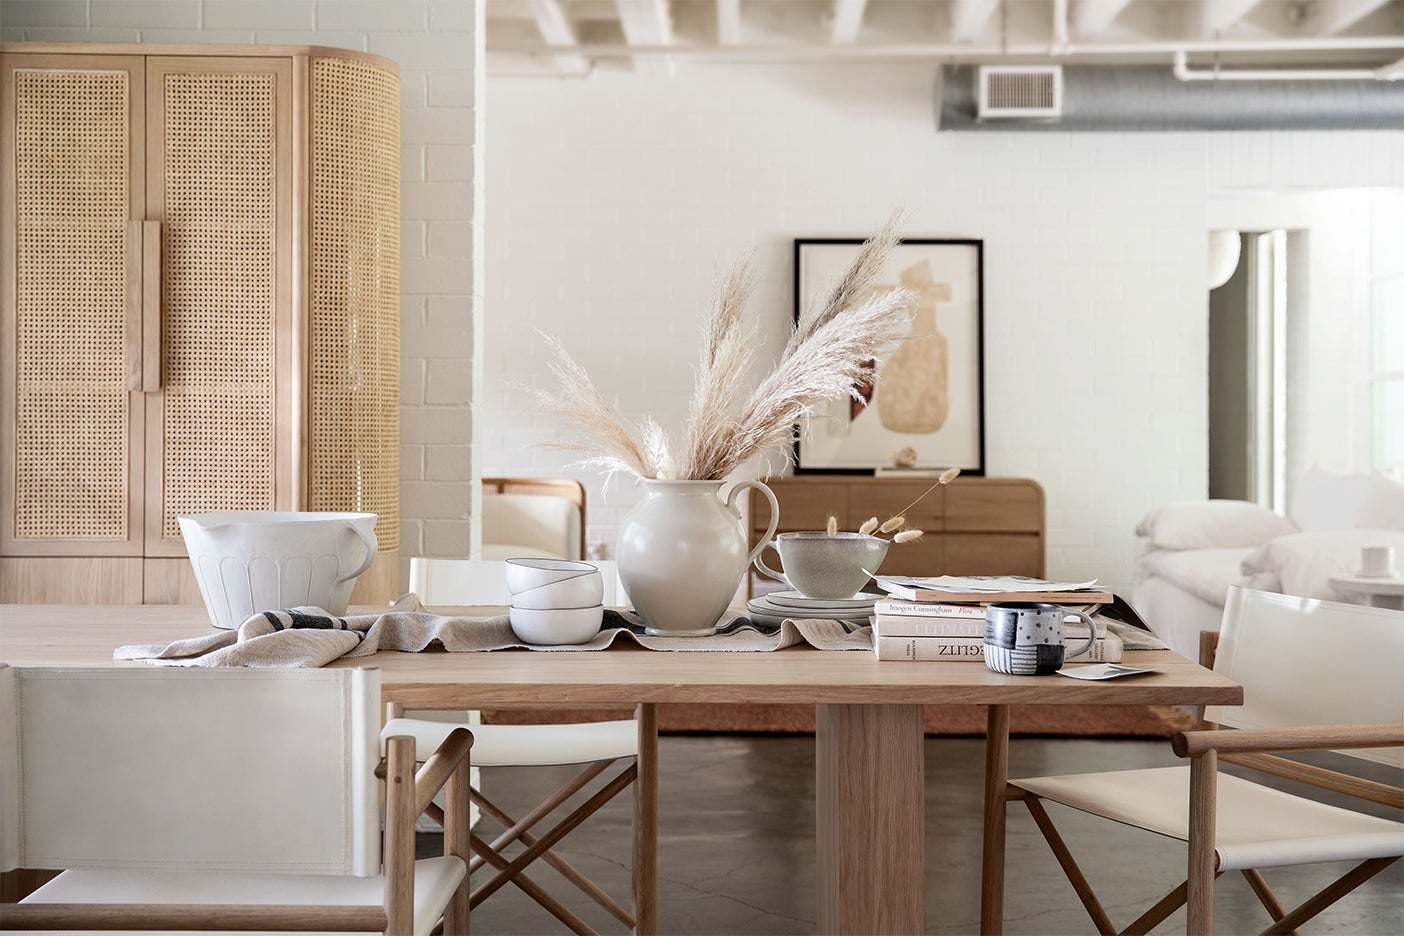 dining room table full of neutral-colored ceramics